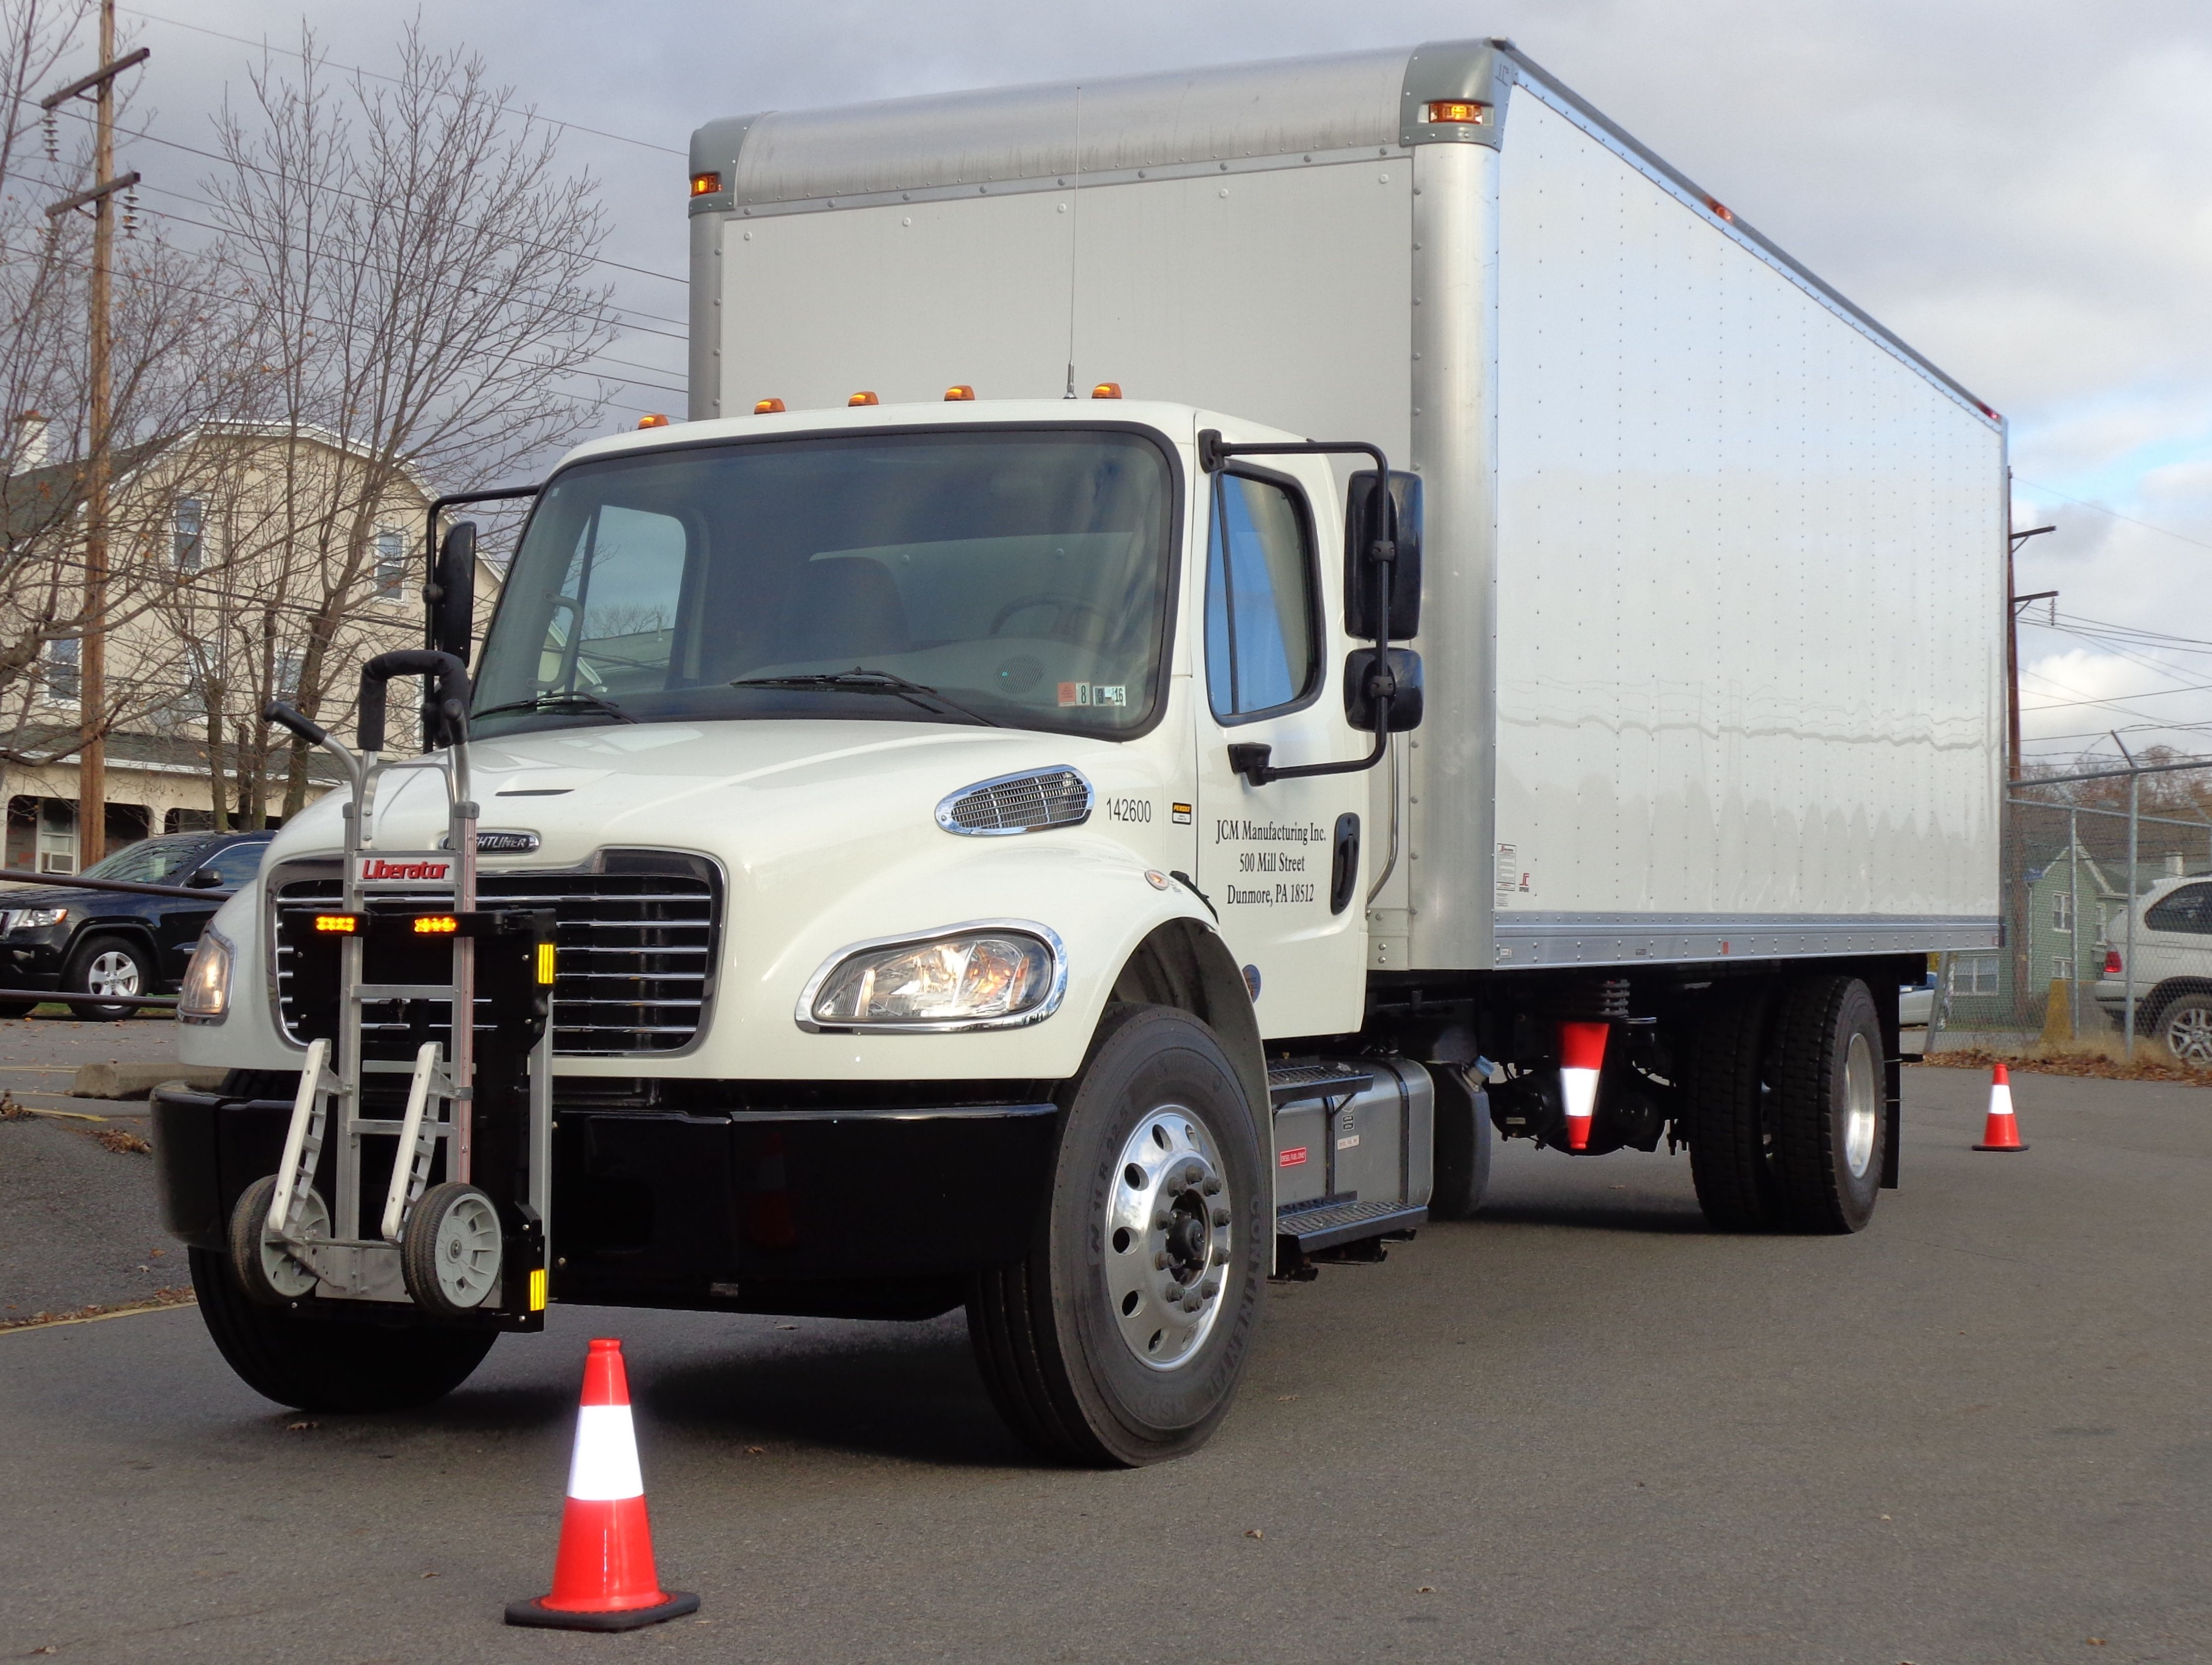 Penske Truck Lease Freightliner M2 Route Delivery Truck Equipped With Hts Systems Hts 10t Tilt Mount Hand Truck Sentry System Trucks Freightliner Hand Trucks